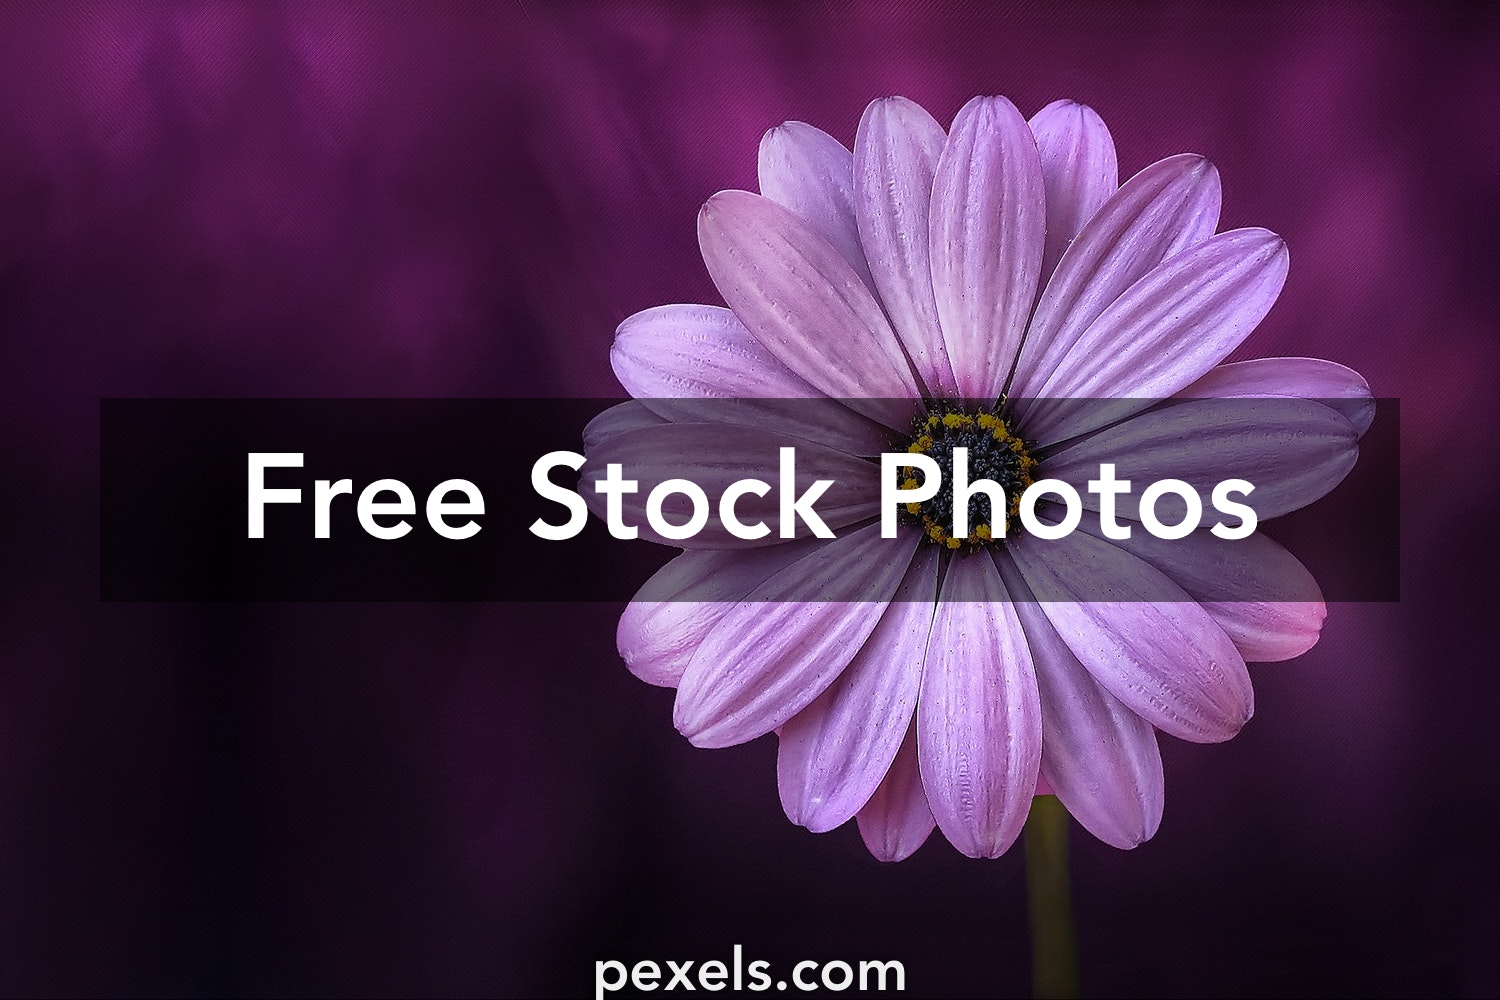 Flower Images Pexels Free Stock Photos